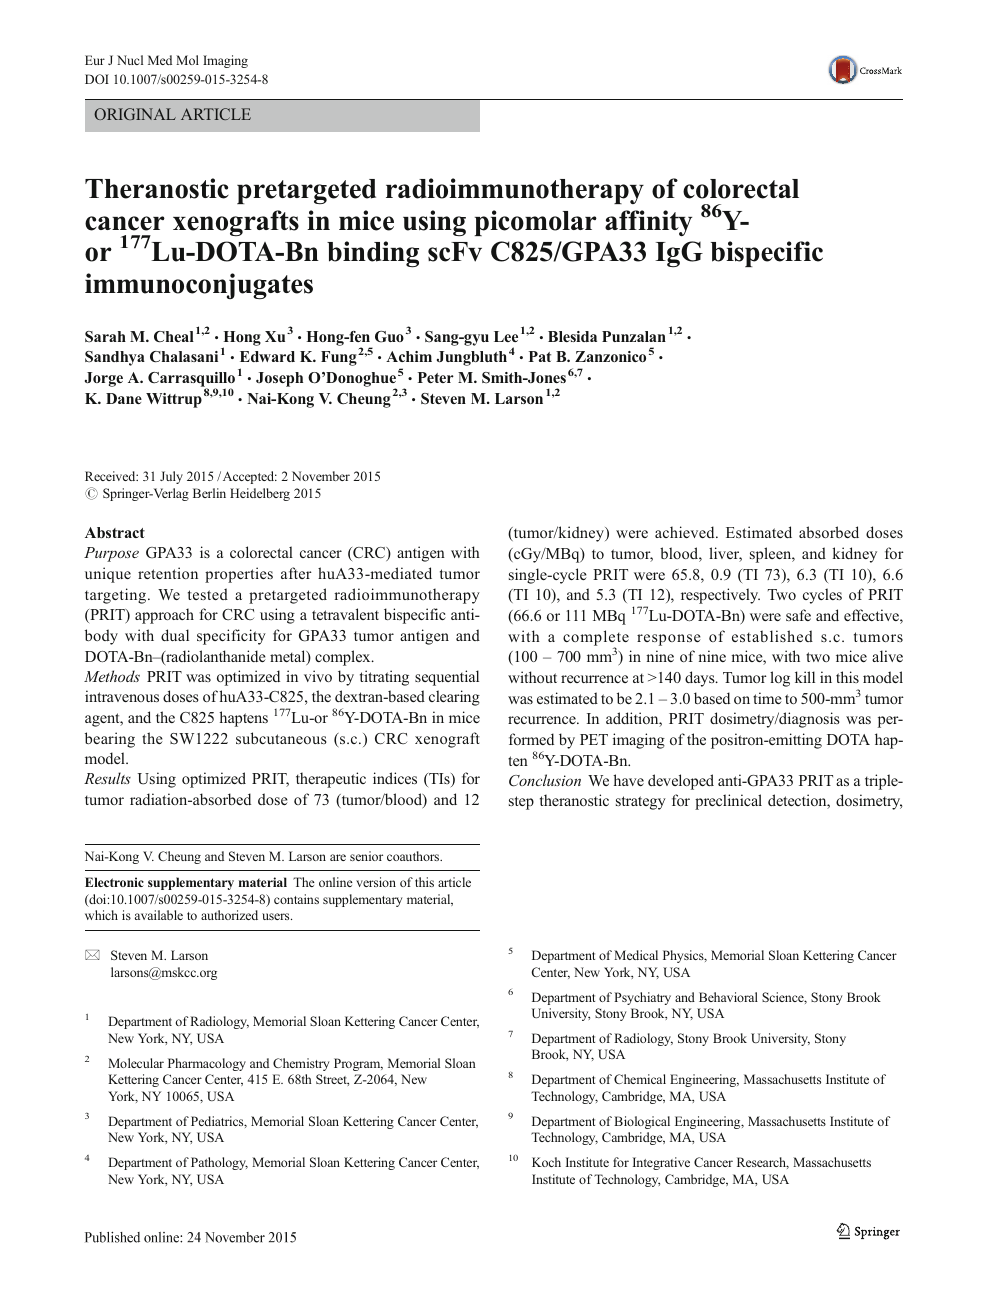 Theranostic Pretargeted Radioimmunotherapy Of Colorectal Cancer Xenografts In Mice Using Picomolar Affinity 86y Or 177lu Dota Bn Binding Scfv C825 Gpa33 Igg Bispecific Immunoconjugates Topic Of Research Paper In Clinical Medicine Download Scholarly